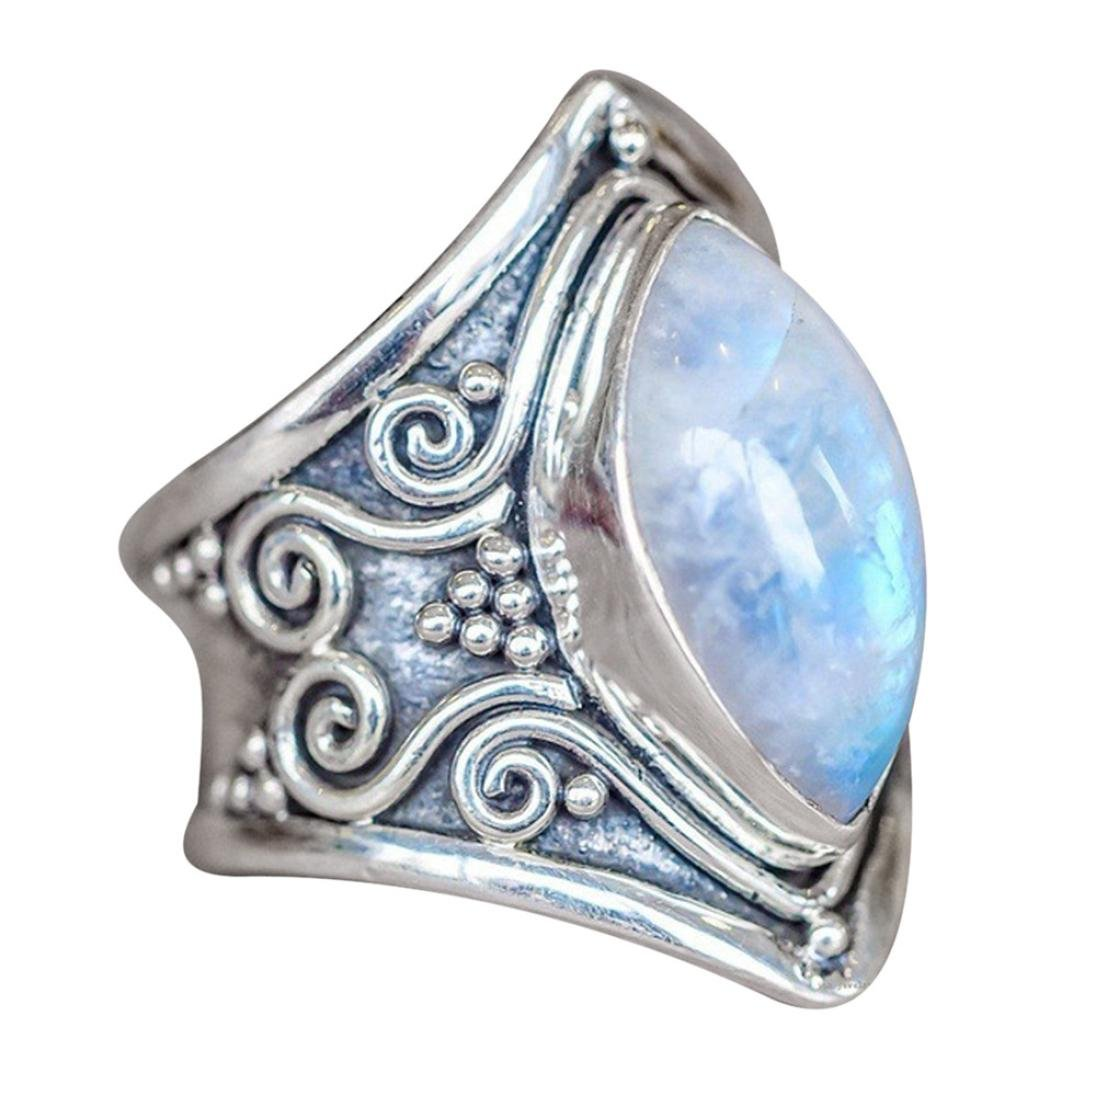 Clearance 1PC Boho Jewelry Silver Natural Gemstone Marquise Moonstone Personalized Ring Napoo-Rings Napoo-3462